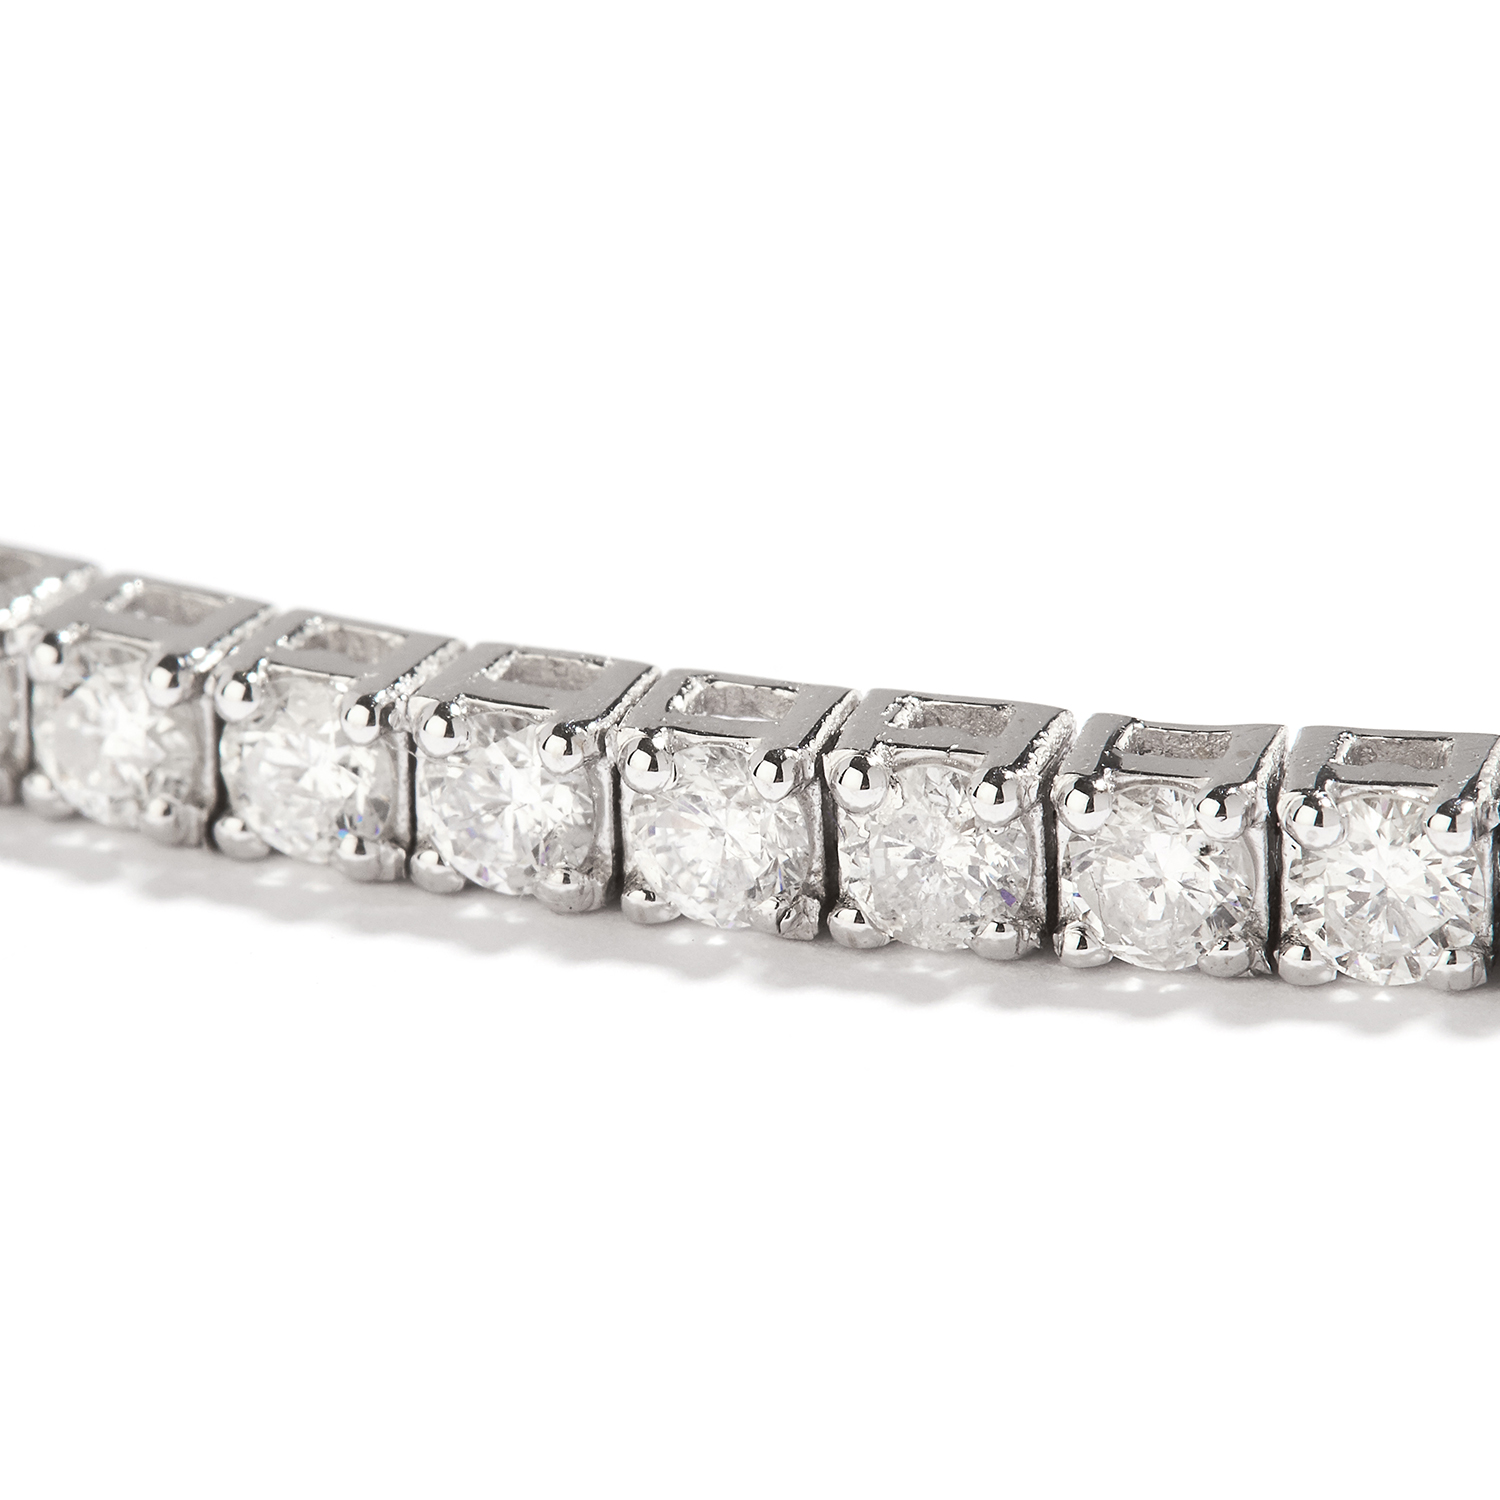 5.60 CART DIAMOND LINE BRACELET in 18ct white gold, comprising a single row of round cut diamonds, - Image 2 of 2